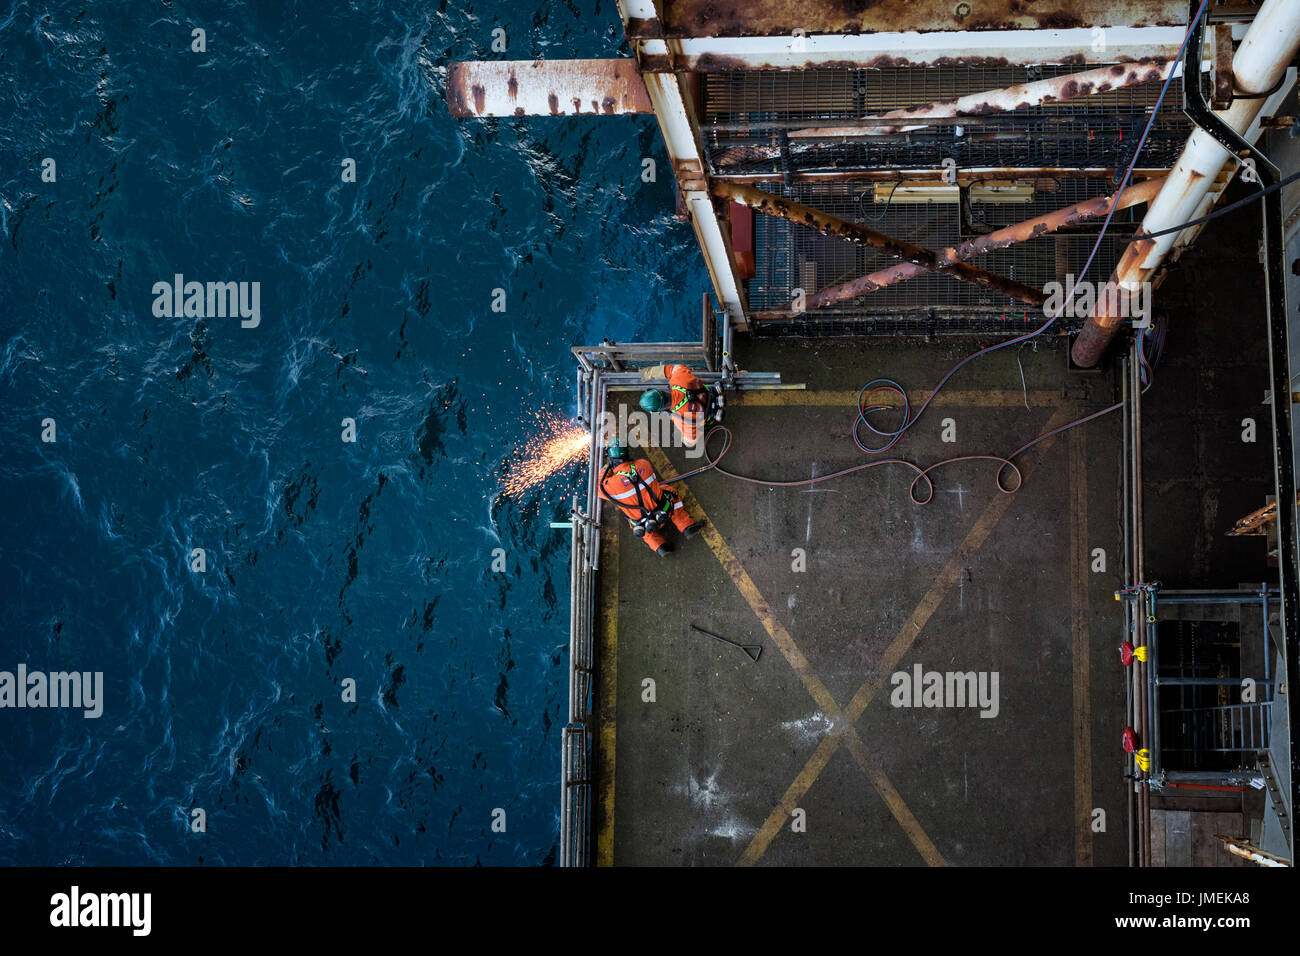 Image of industrial workers, using oxy acetylene cutting torches on the decommissioning of a north sea oil rig. credit: LEE RAMSDEN / ALAMY - Stock Image